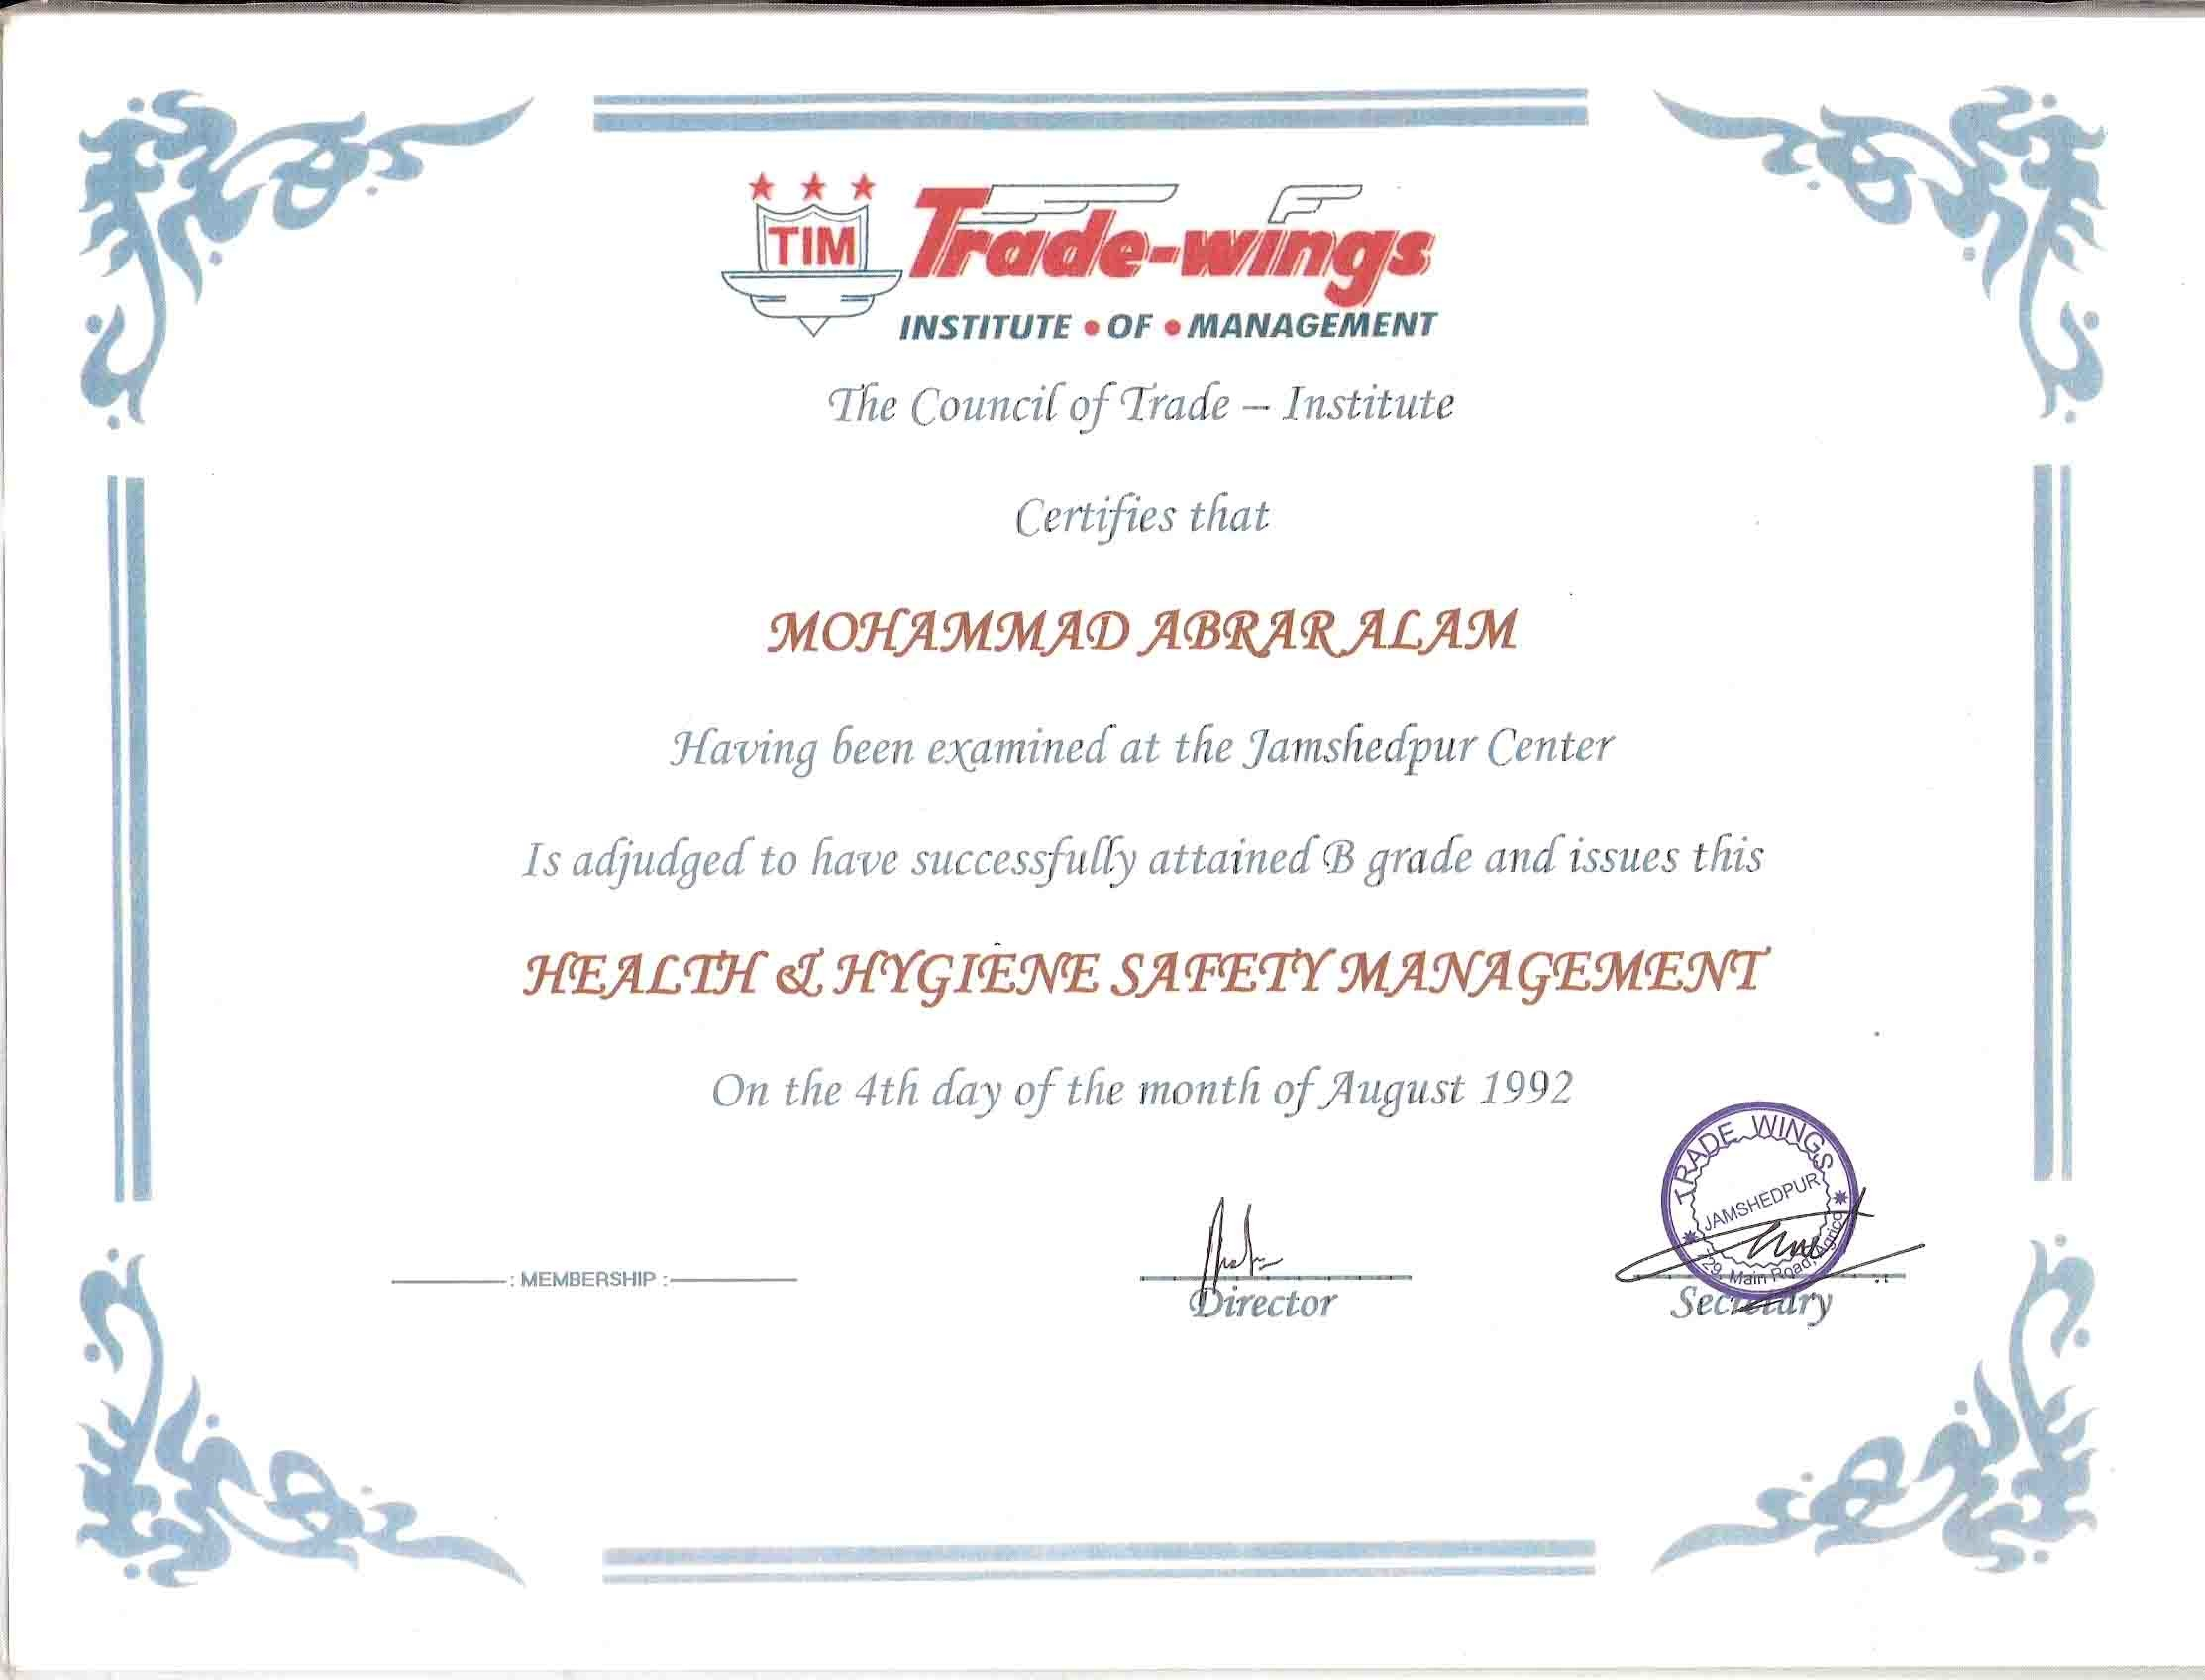 Mohammad abrar alam bayt diploma in occupational health hygiene safety management certificate 1betcityfo Image collections